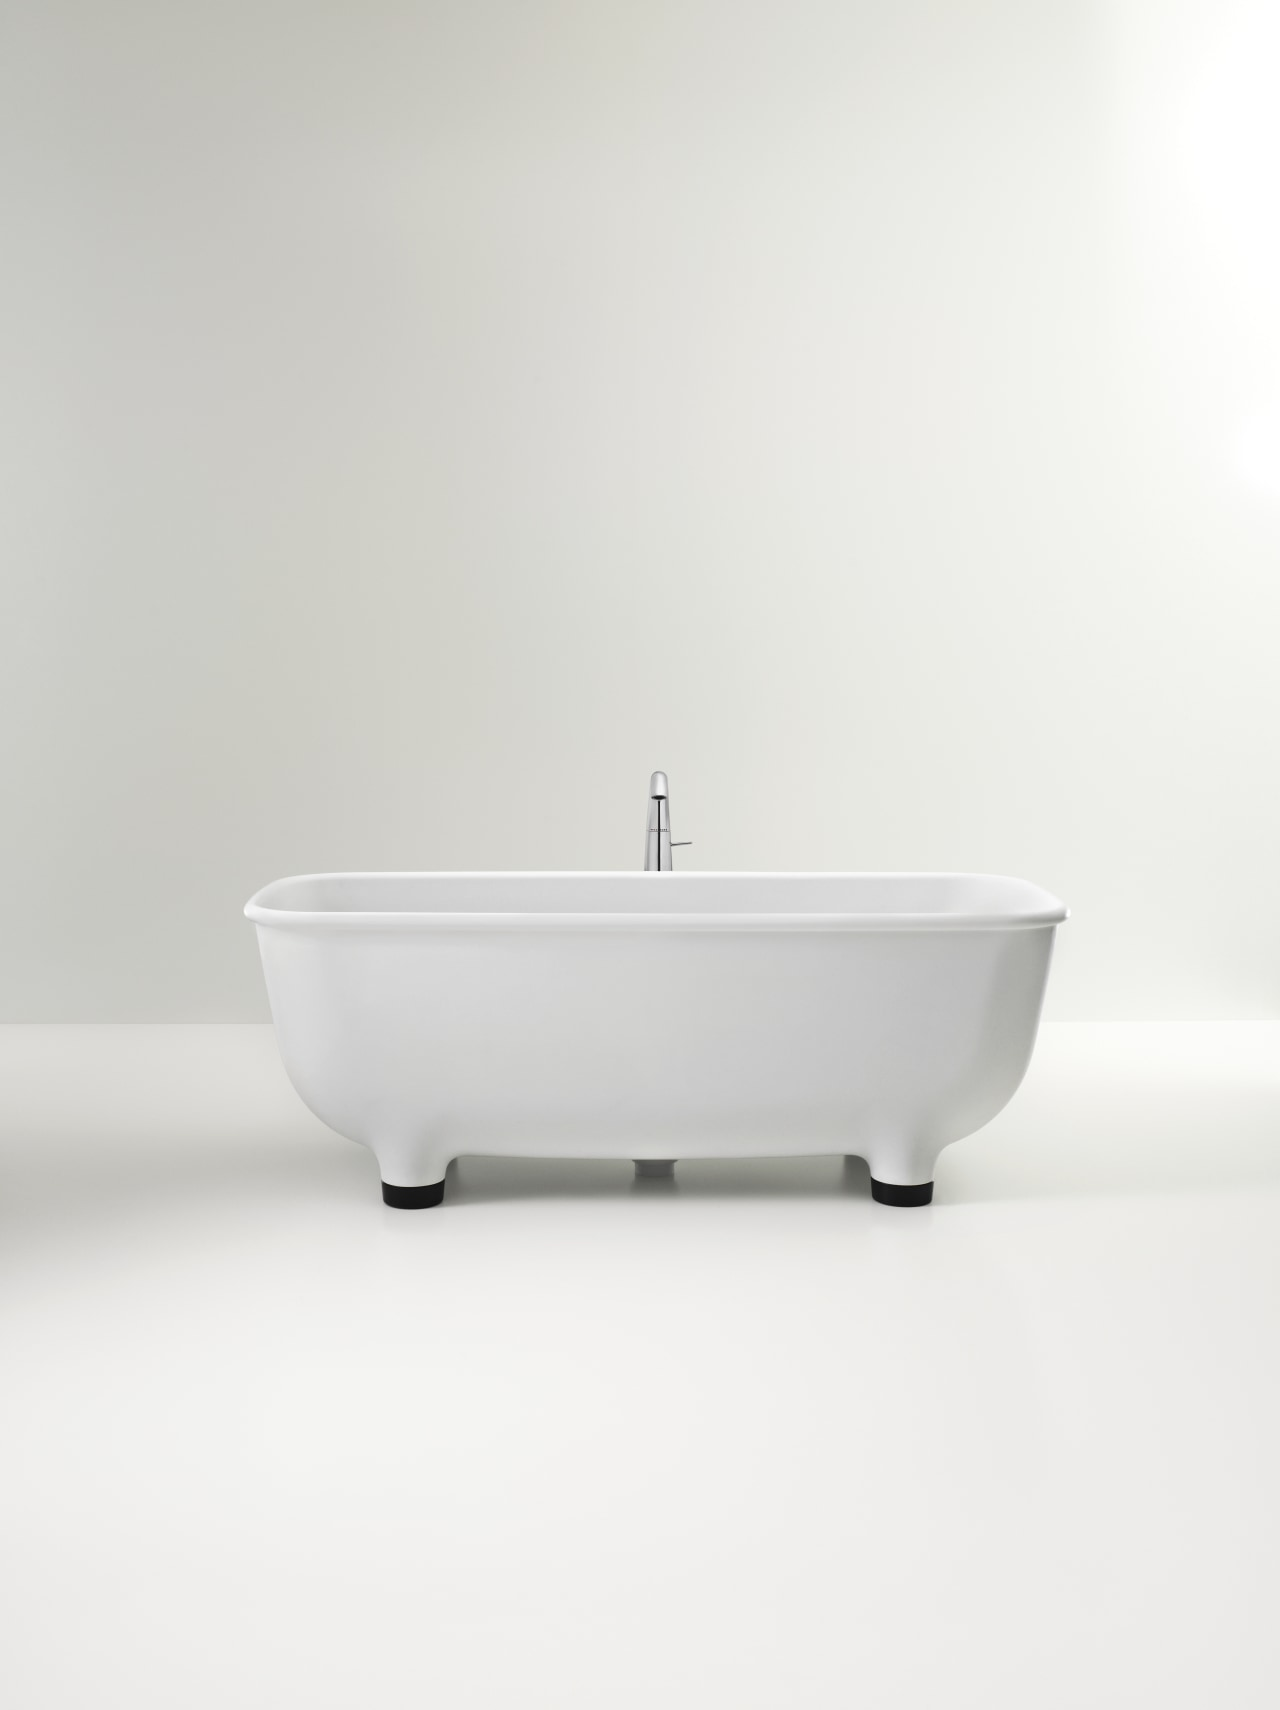 Caroma Marc Newson Collection bathroom sink, bathtub, plumbing fixture, product design, tap, white